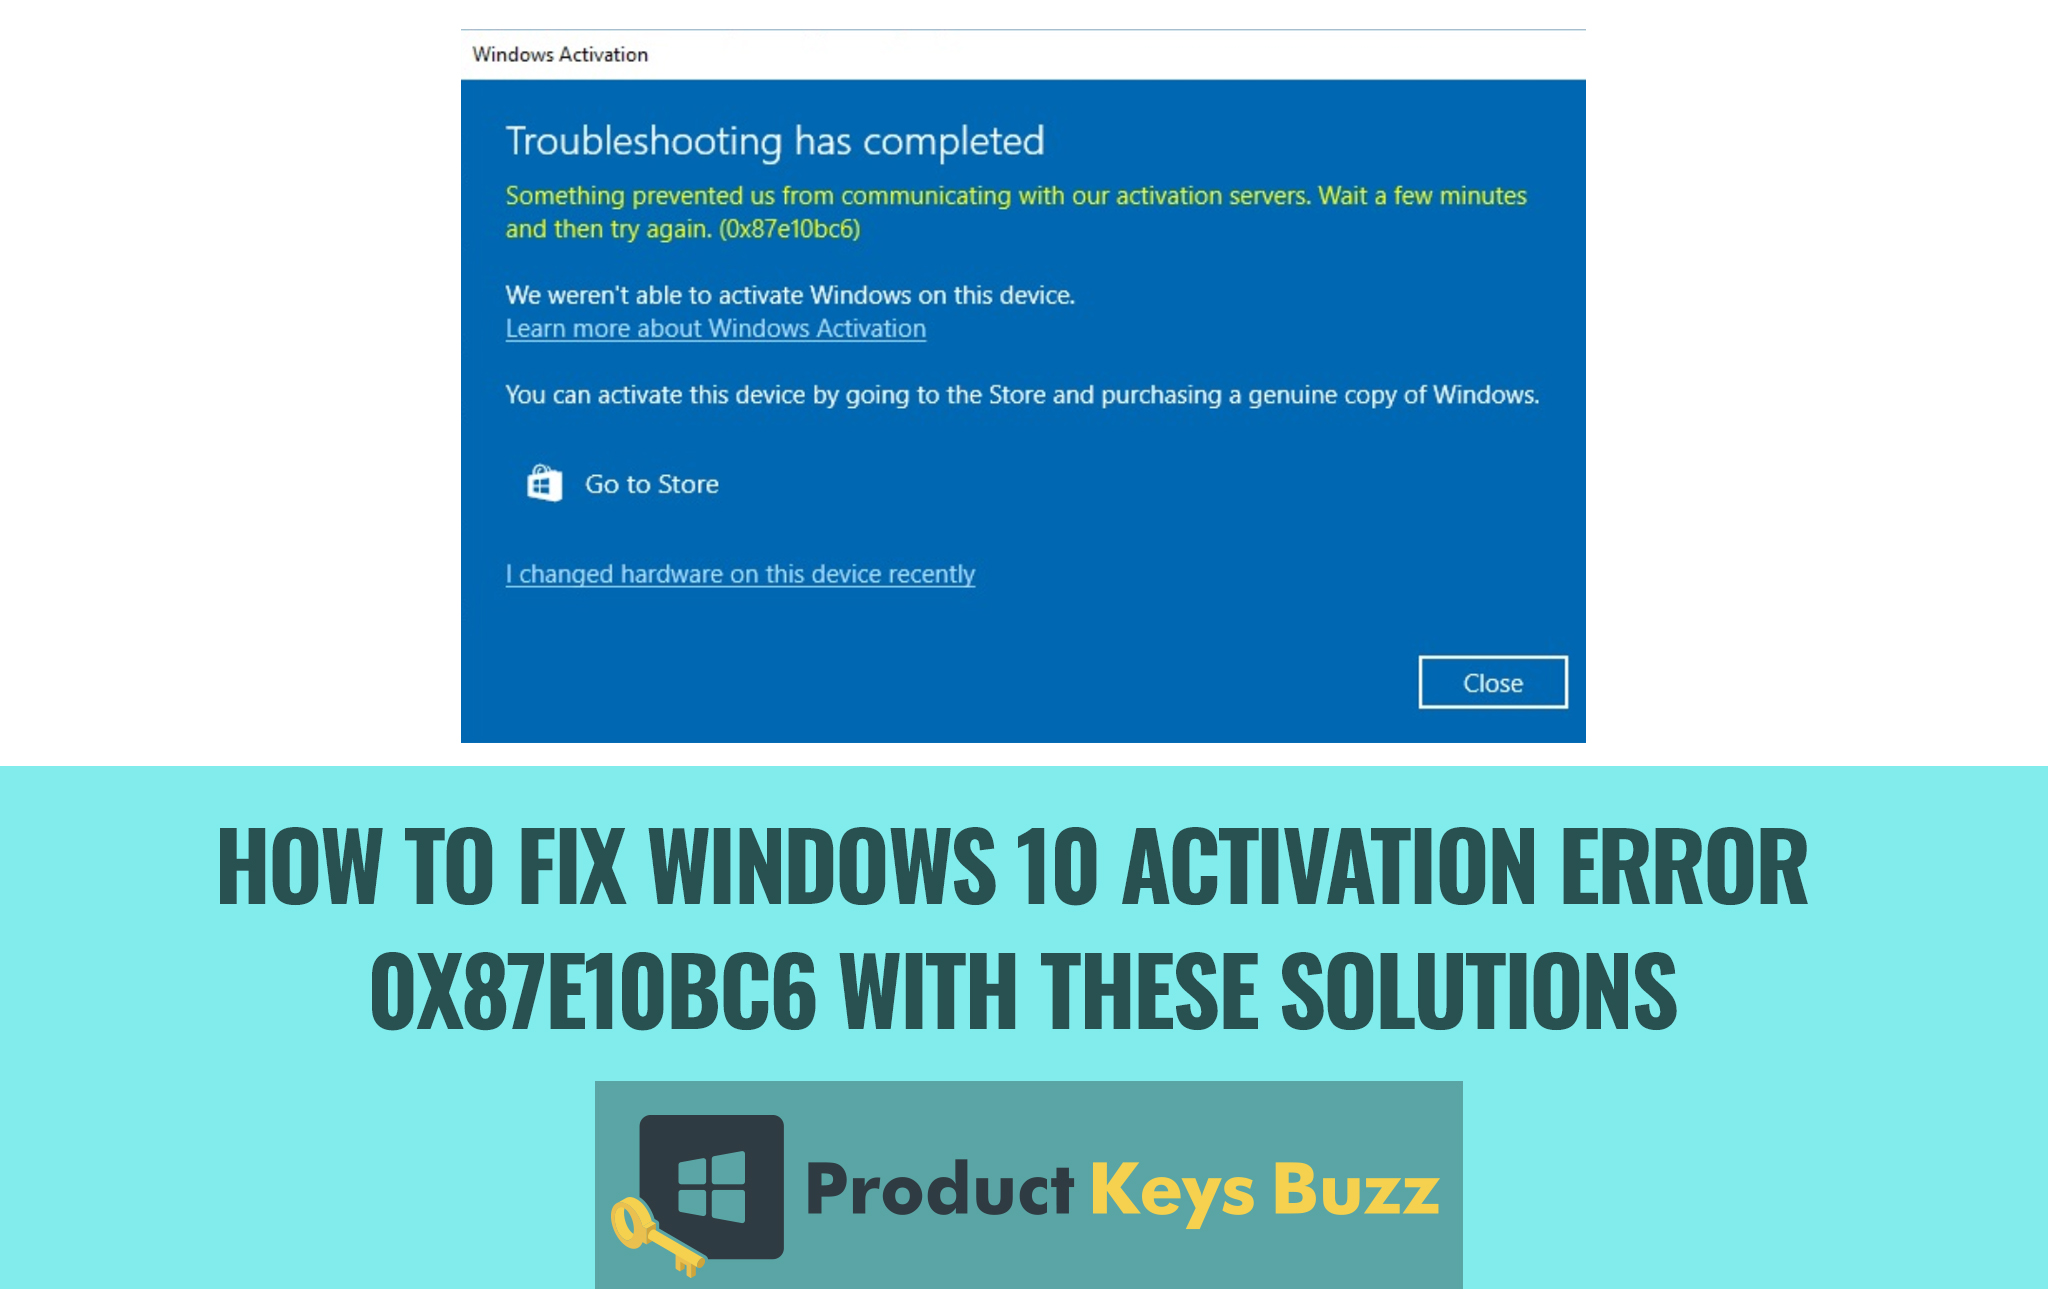 Fix Windows 10 Activation error 0x87e10bc6 with these solutions